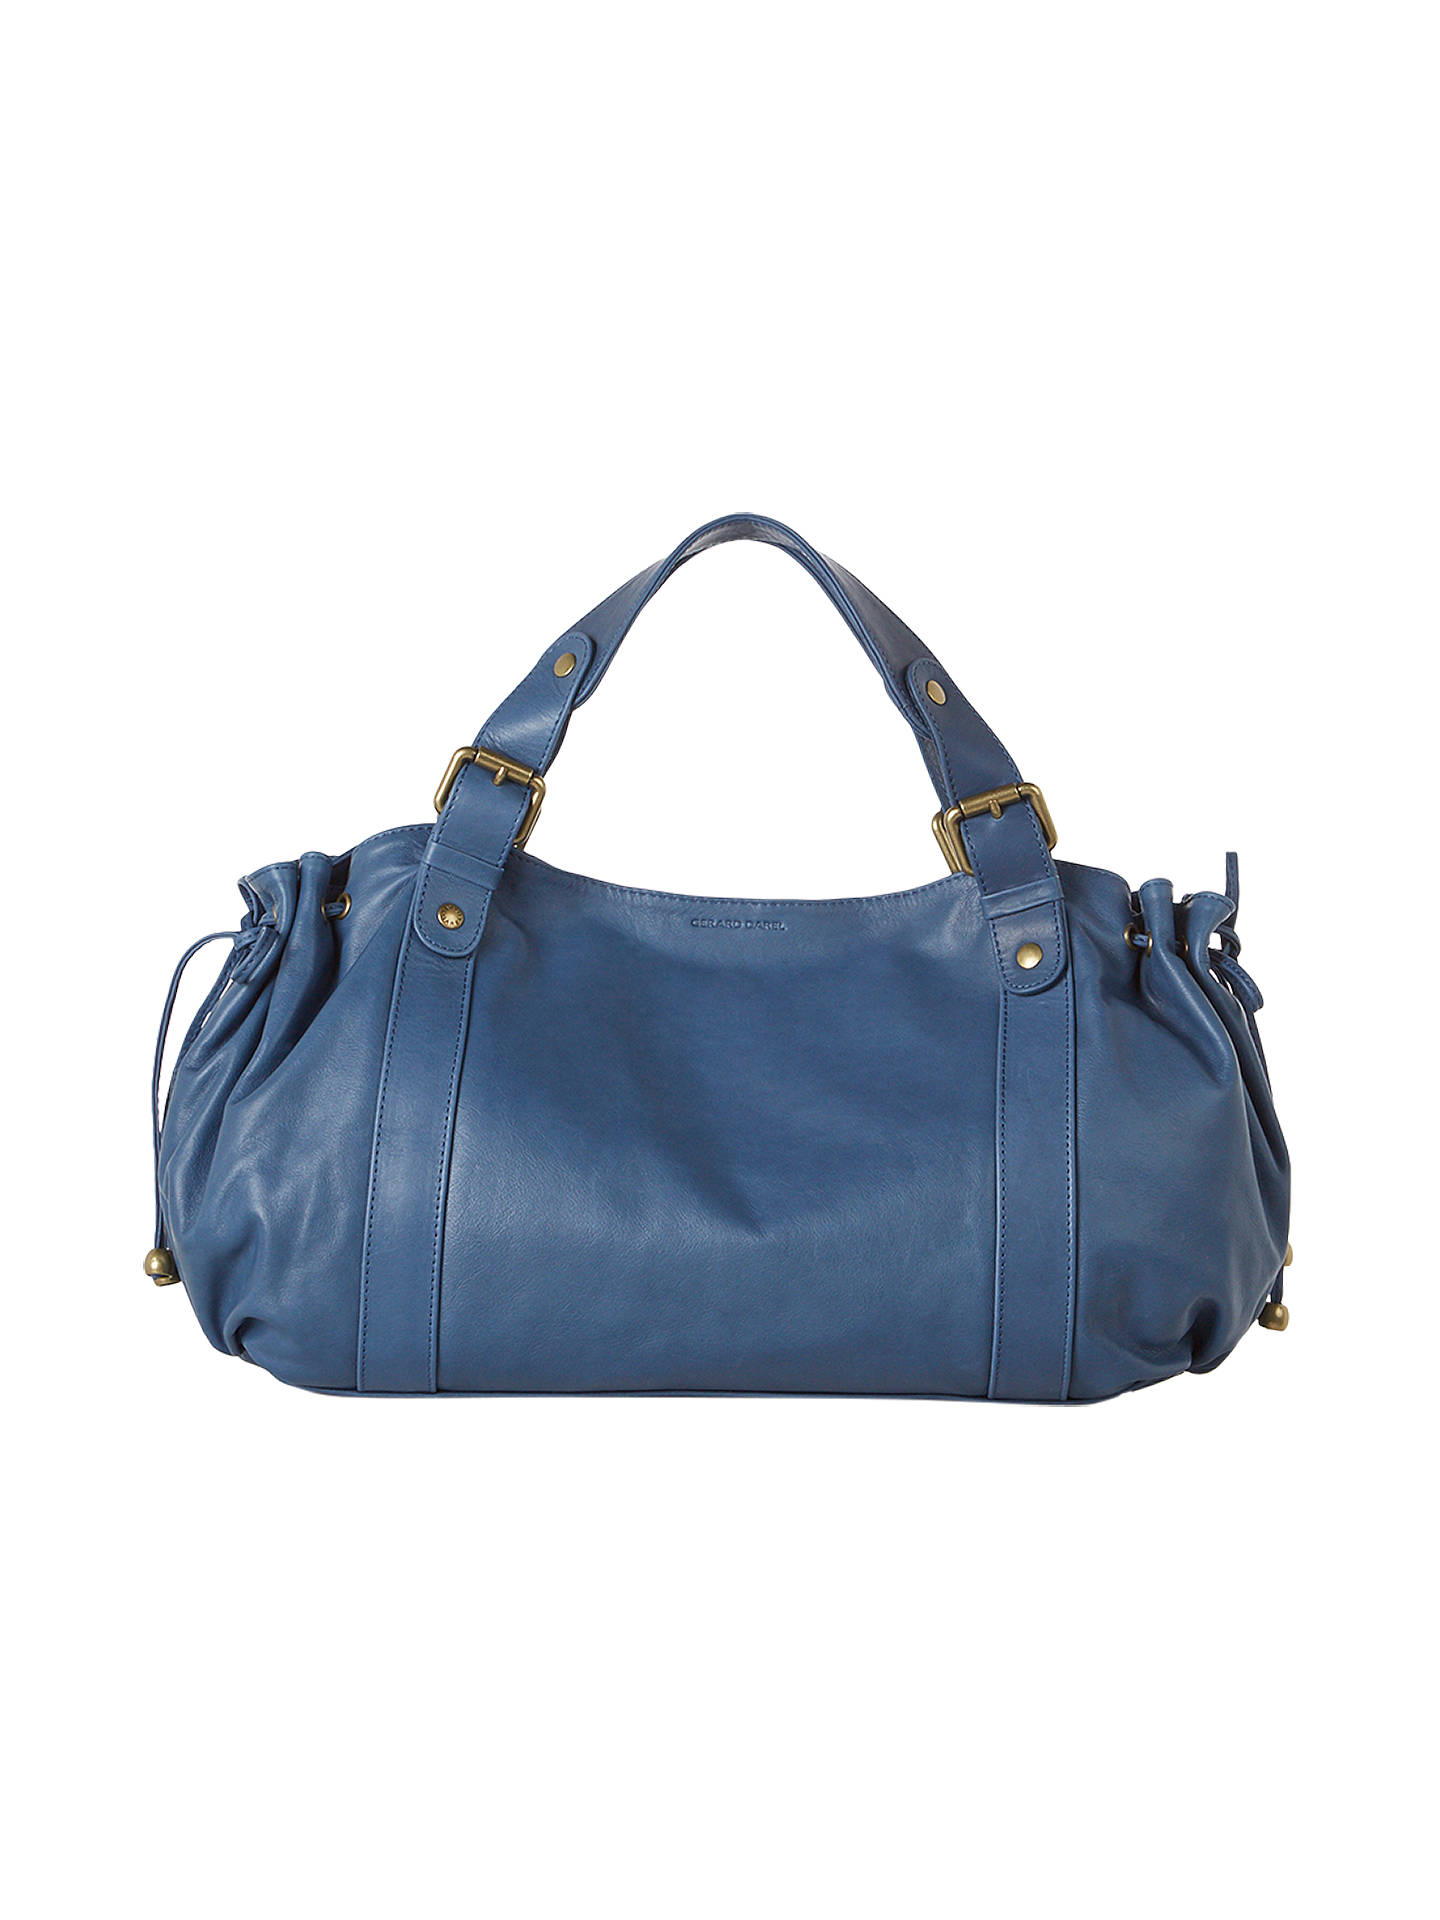 Gerard Darel Le 24 Heur Jean Bag Blue Online At Johnlewis